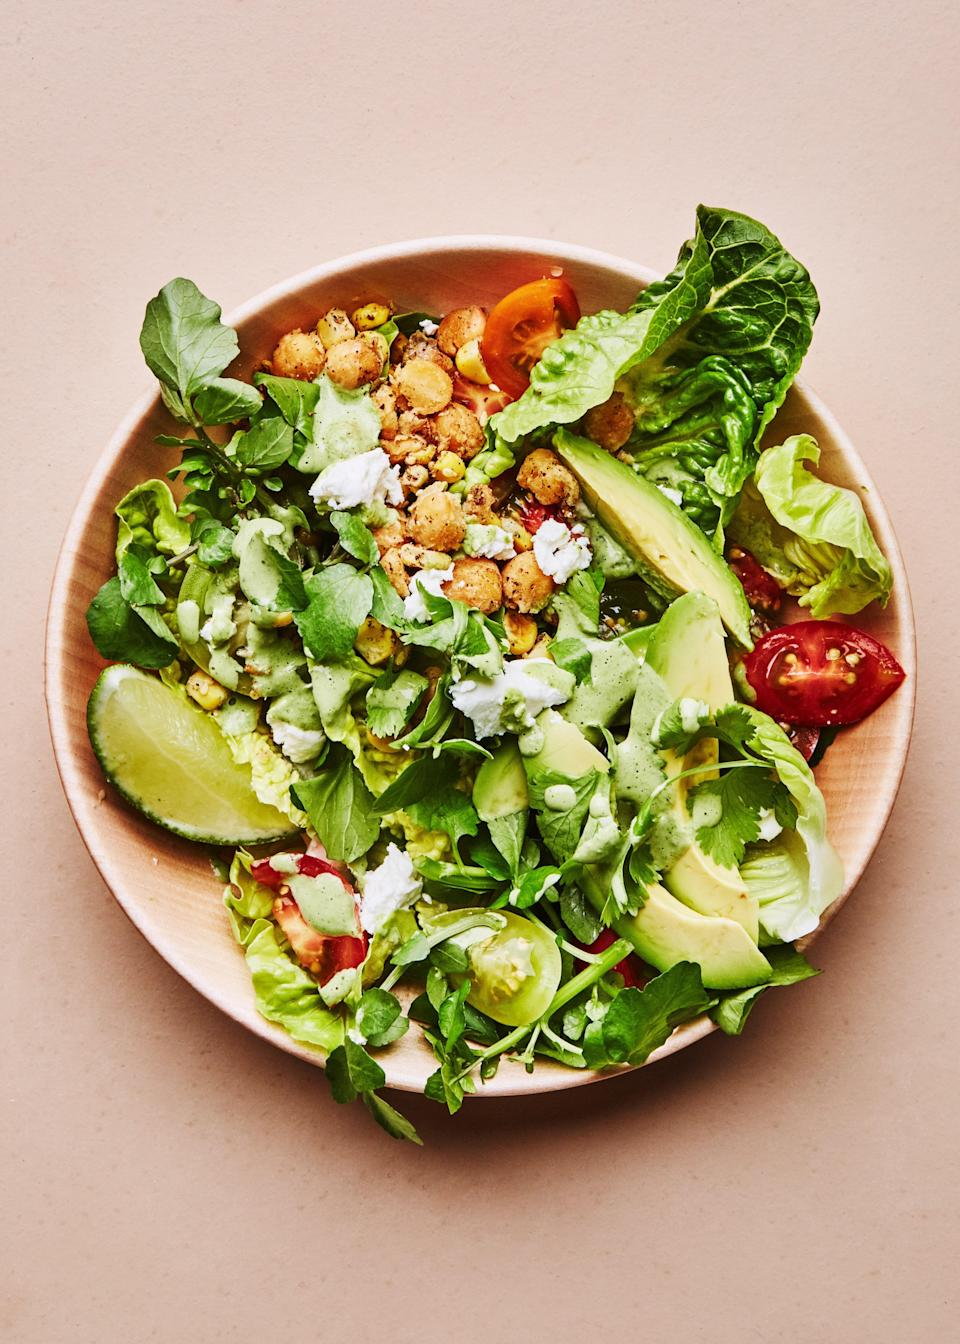 """<p>This dish is all about assembly, not time at the stove. Quickly sauté chickpeas and corn, then simply gather the supporting characters: lettuce, tomatoes, avocado, feta, and lime. </p>   <p><em>Like this</em> Bon Appétit <em>recipe? There are plenty more where this came from.</em> <a href=""""https://subscribe.bonappetit.com/subscribe/bonappetit/122921?source=HCL_BNA_SUBSCRIBE_LINK_0_EPICURIOUS_ZZ"""" rel=""""nofollow noopener"""" target=""""_blank"""" data-ylk=""""slk:Subscribe to the magazine here!"""" class=""""link rapid-noclick-resp""""><em>Subscribe to the magazine here!</em></a></p> <a href=""""https://www.epicurious.com/recipes/food/views/corn-and-chickpea-bowls-with-miso-tahini?mbid=synd_yahoo_rss"""" rel=""""nofollow noopener"""" target=""""_blank"""" data-ylk=""""slk:See recipe."""" class=""""link rapid-noclick-resp"""">See recipe.</a>"""